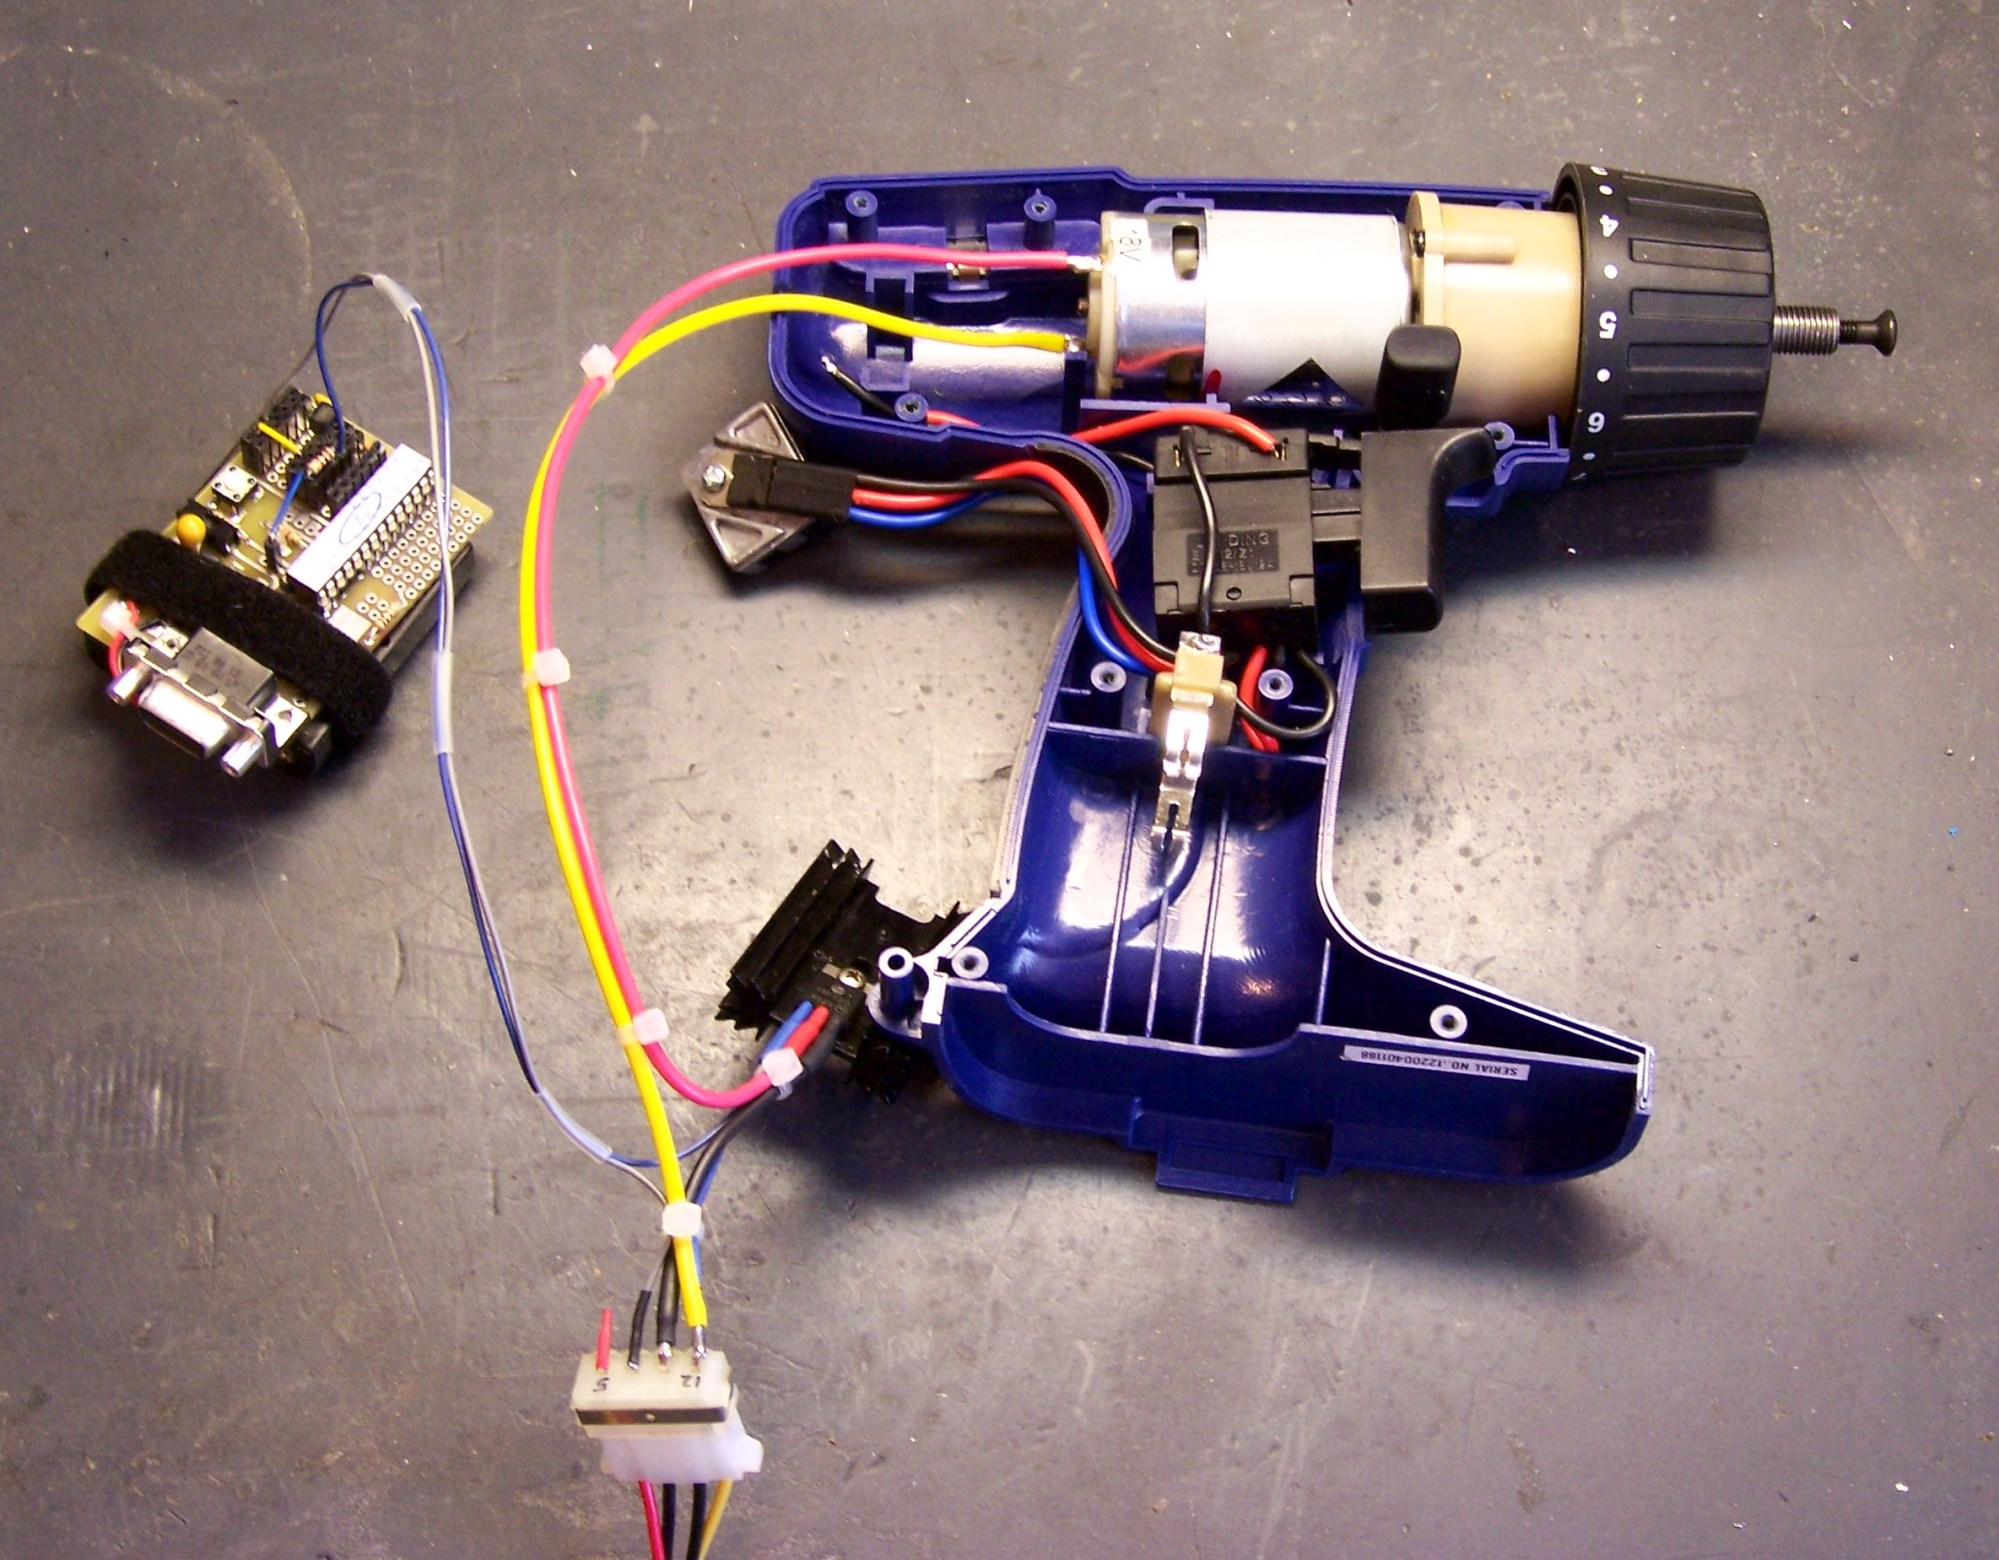 hight resolution of cordless drill motor wired to mosfet speed controller